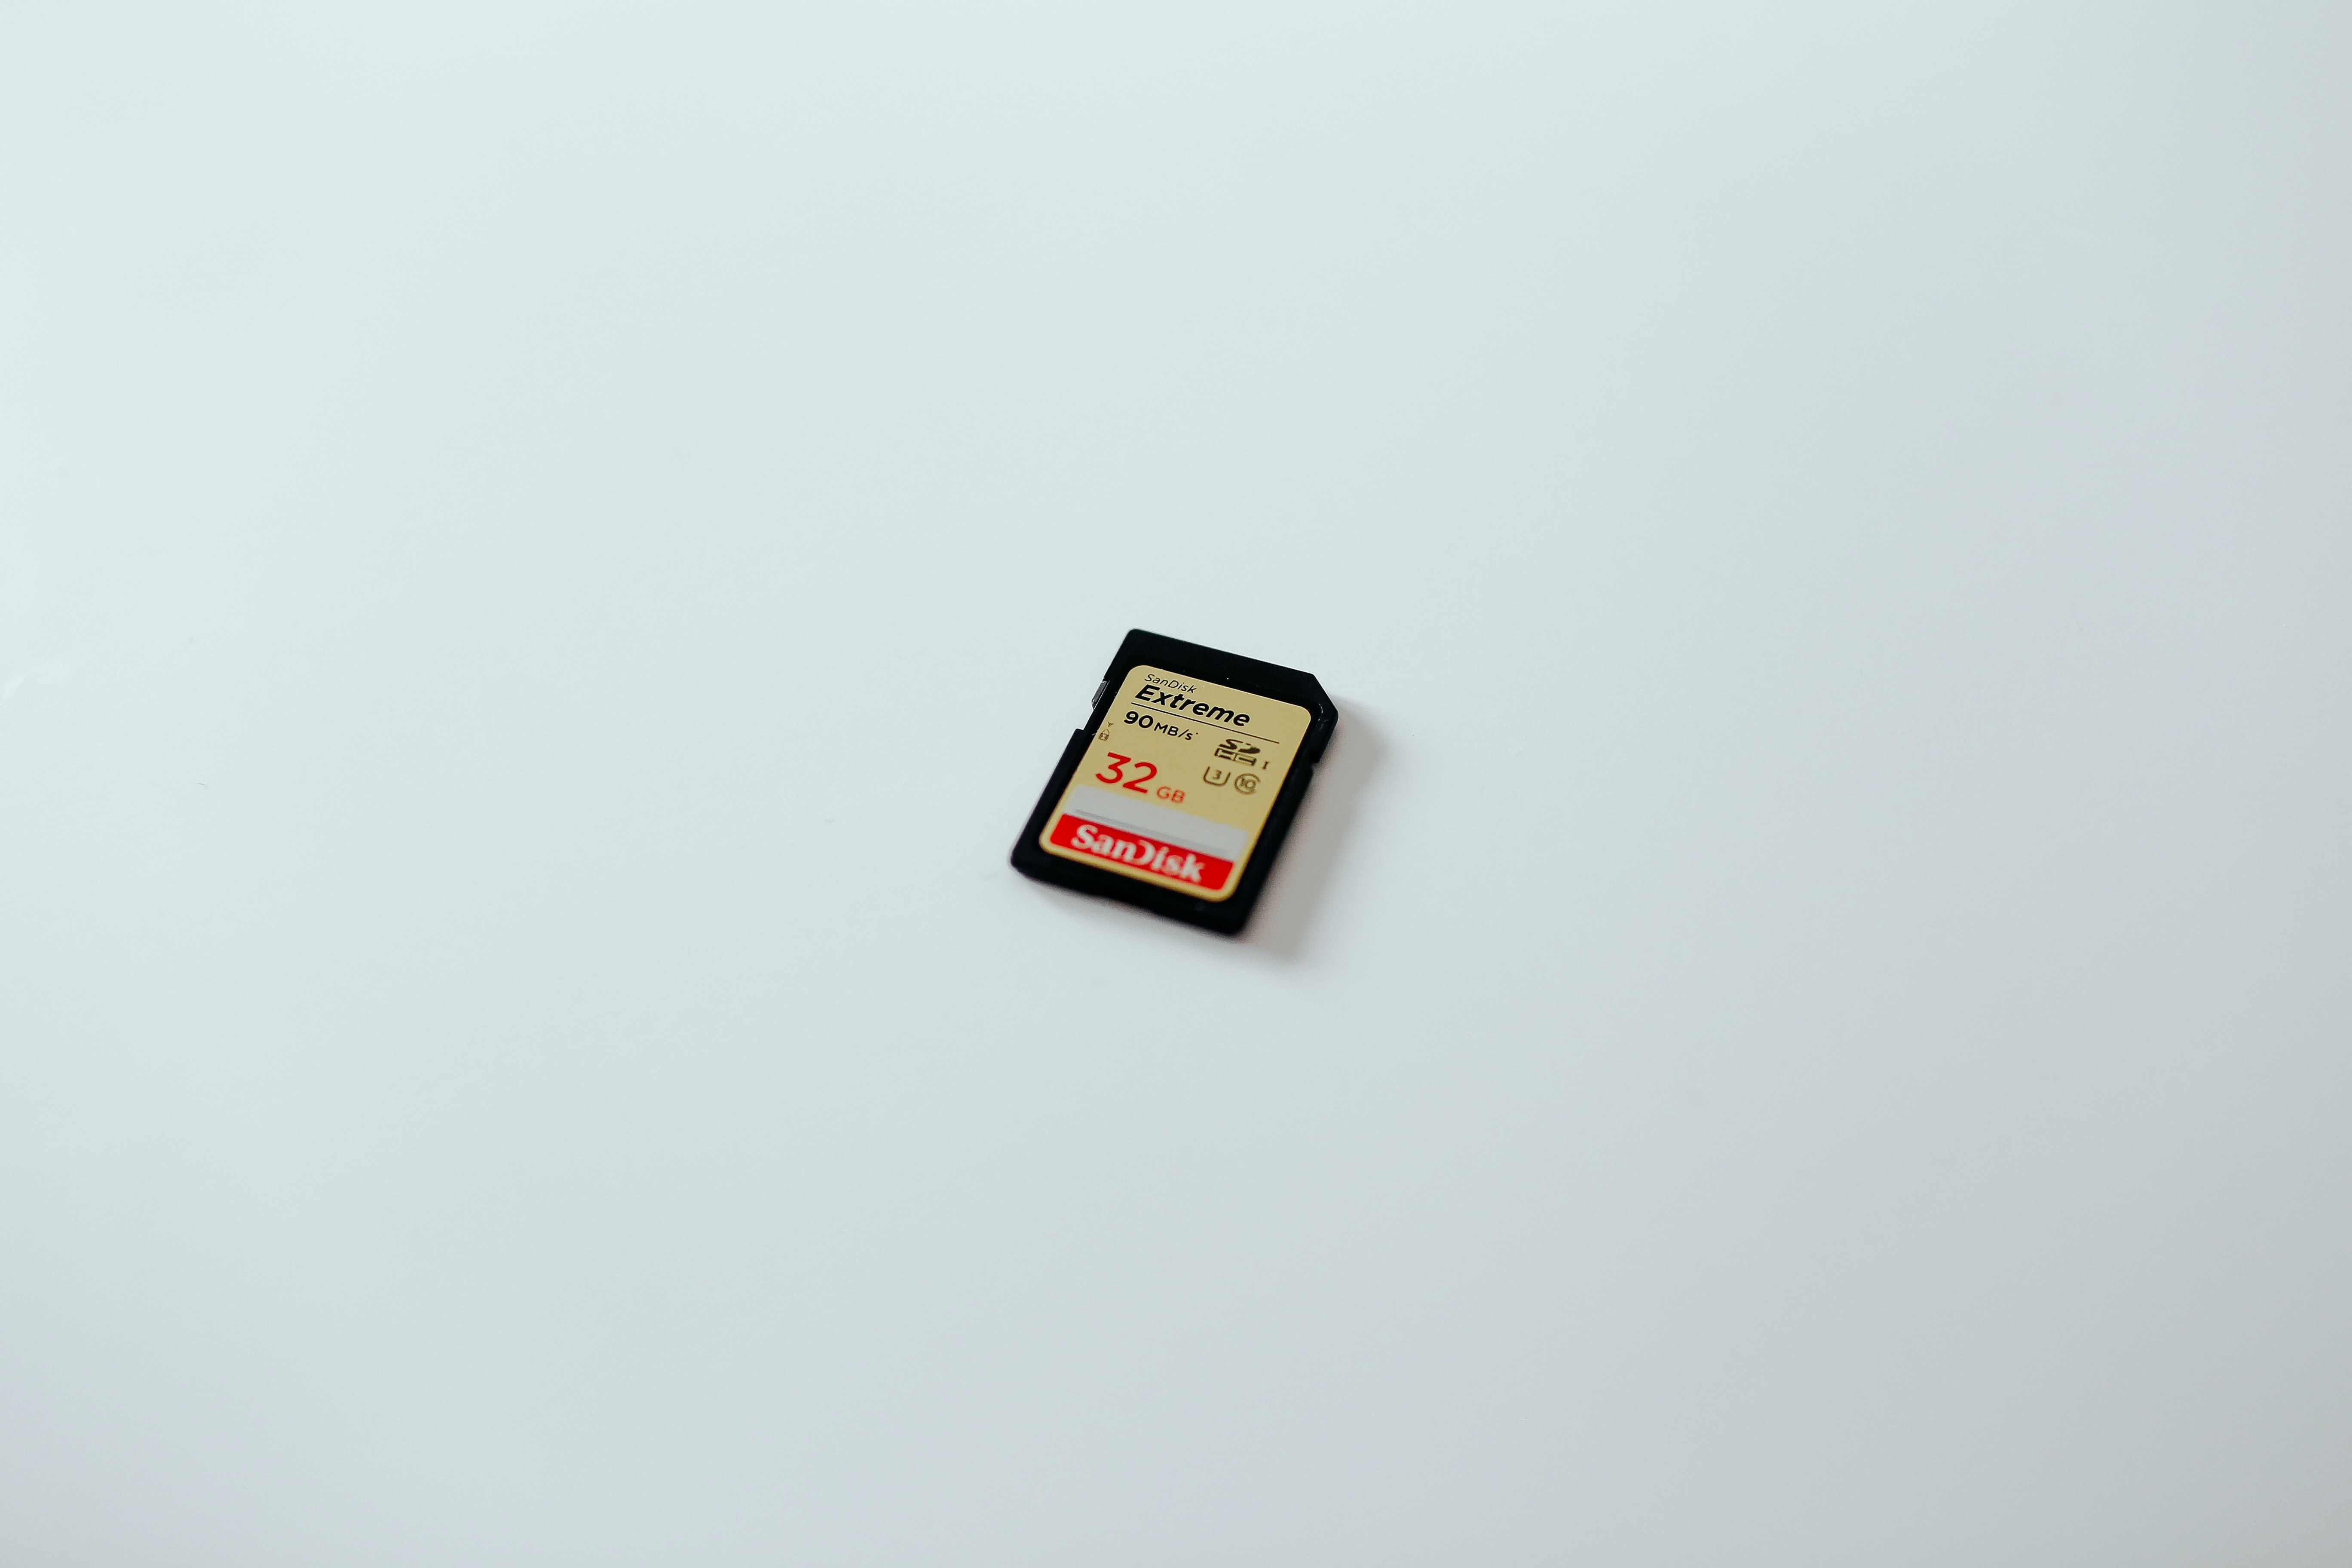 An SD card against a solid-colored background.